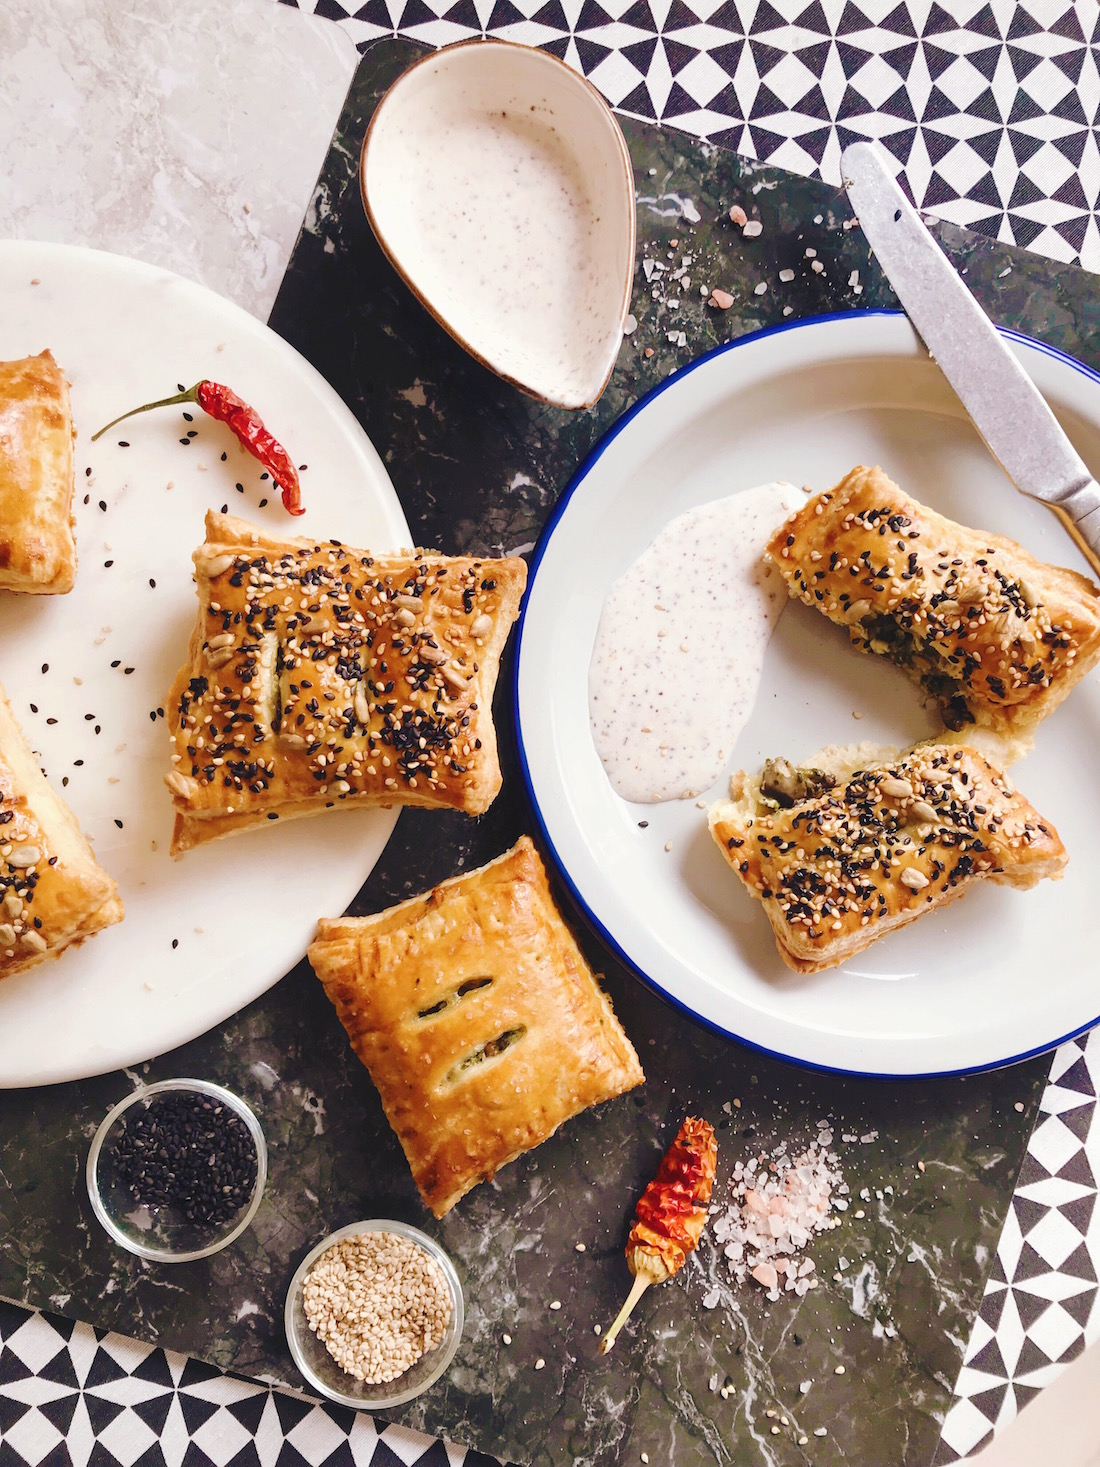 @projectfairytale: cheesem spinach and mushrooms flaky pastries